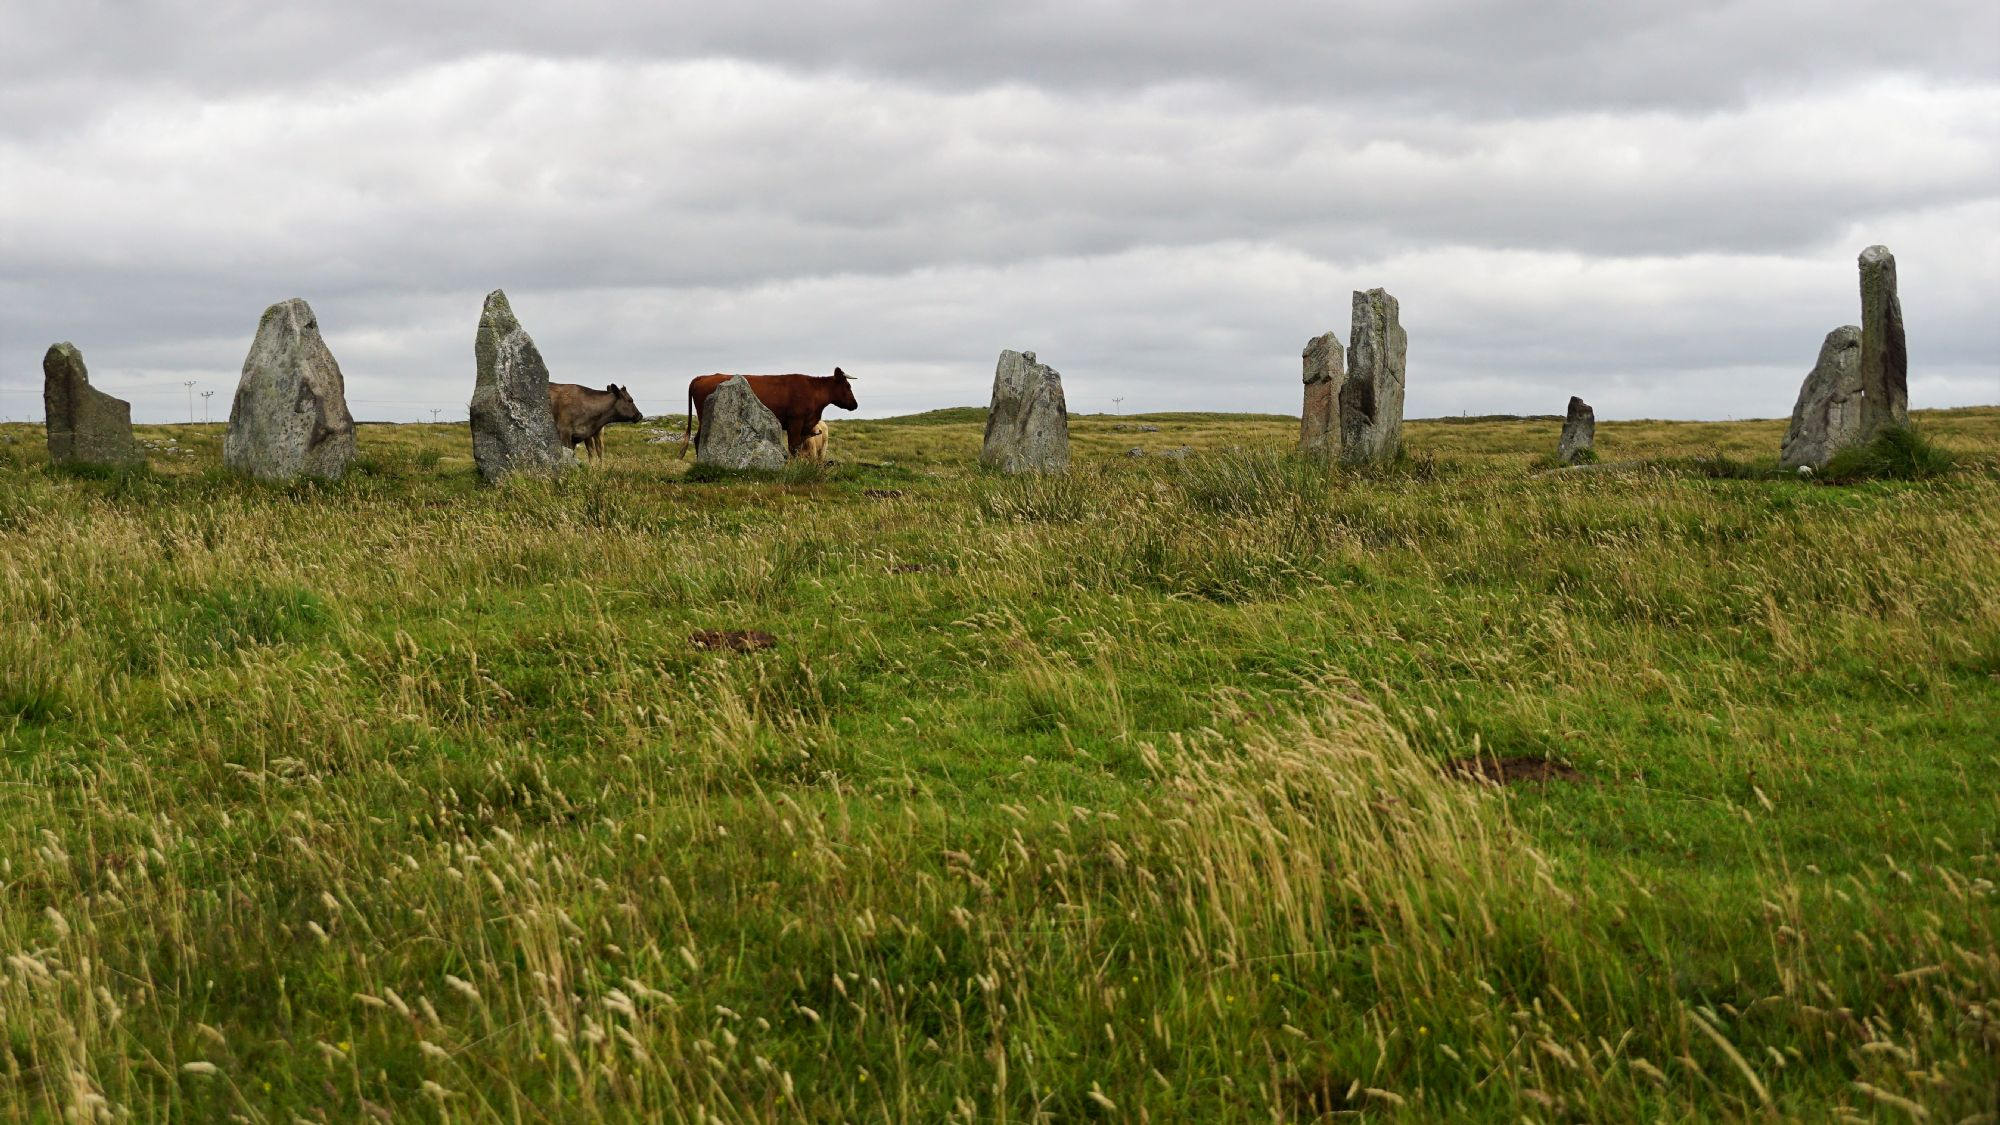 Cows and stones